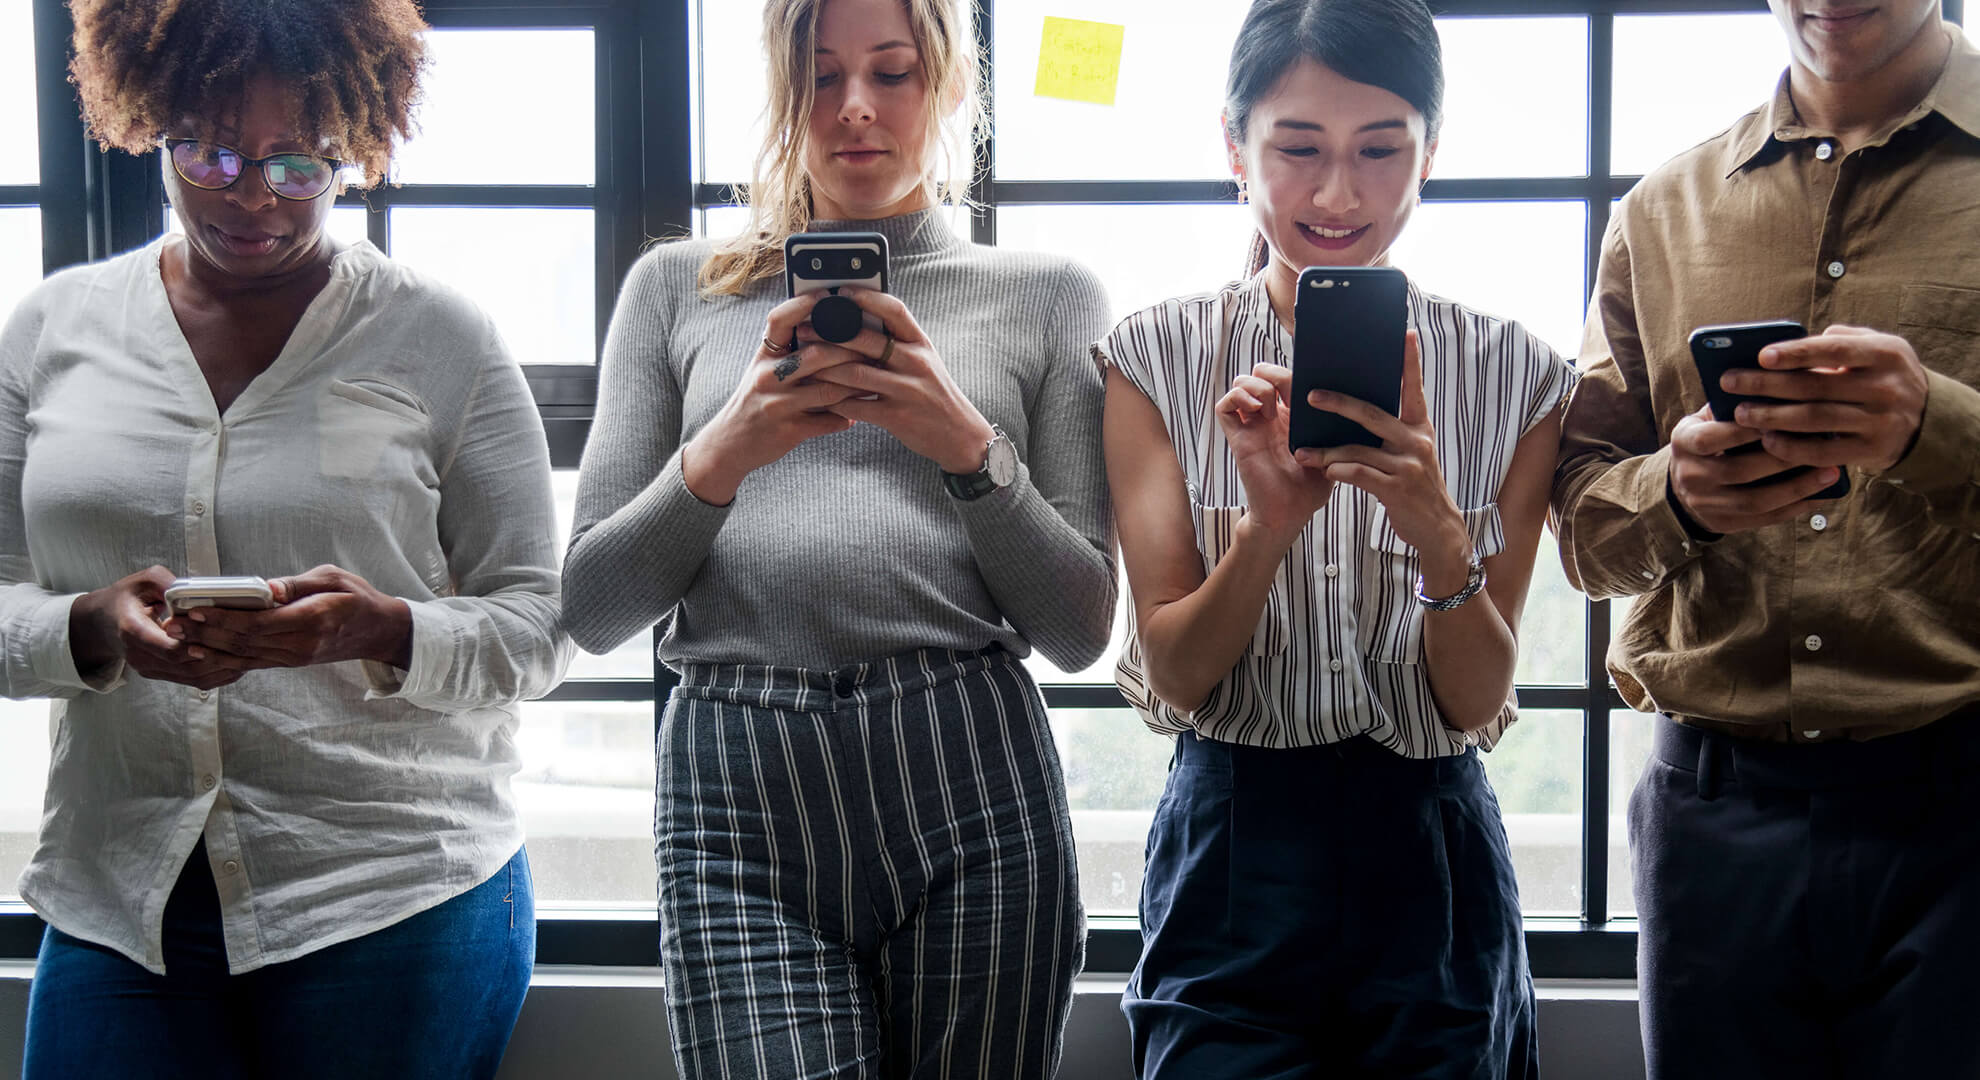 four people standing together all on their mobile phones